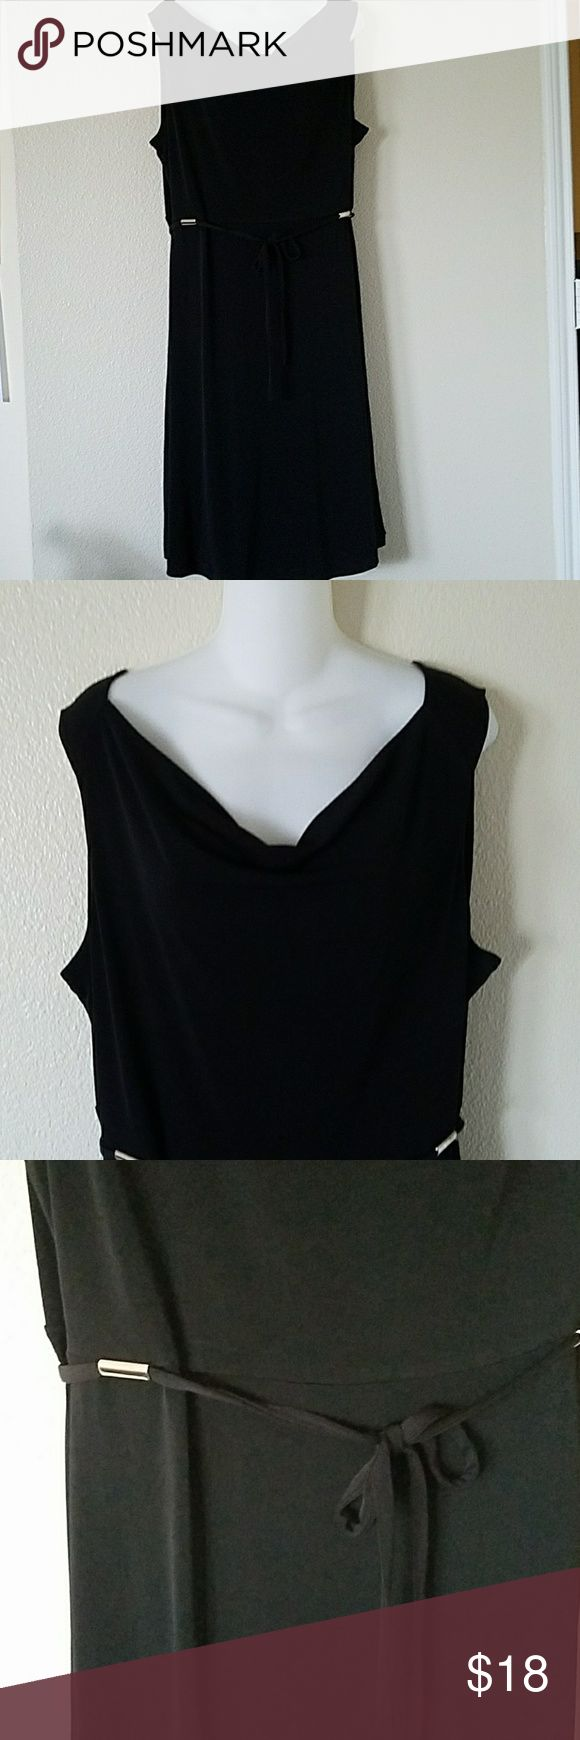 212 Collection black dress size XL 212 Collection beautiful black dress size XL. Necklime drapes a bit, sleeveless, has two silver hardware on waist area, see pic. Easily transition from a work dress to going out little black dress. 212 Collection Dresses